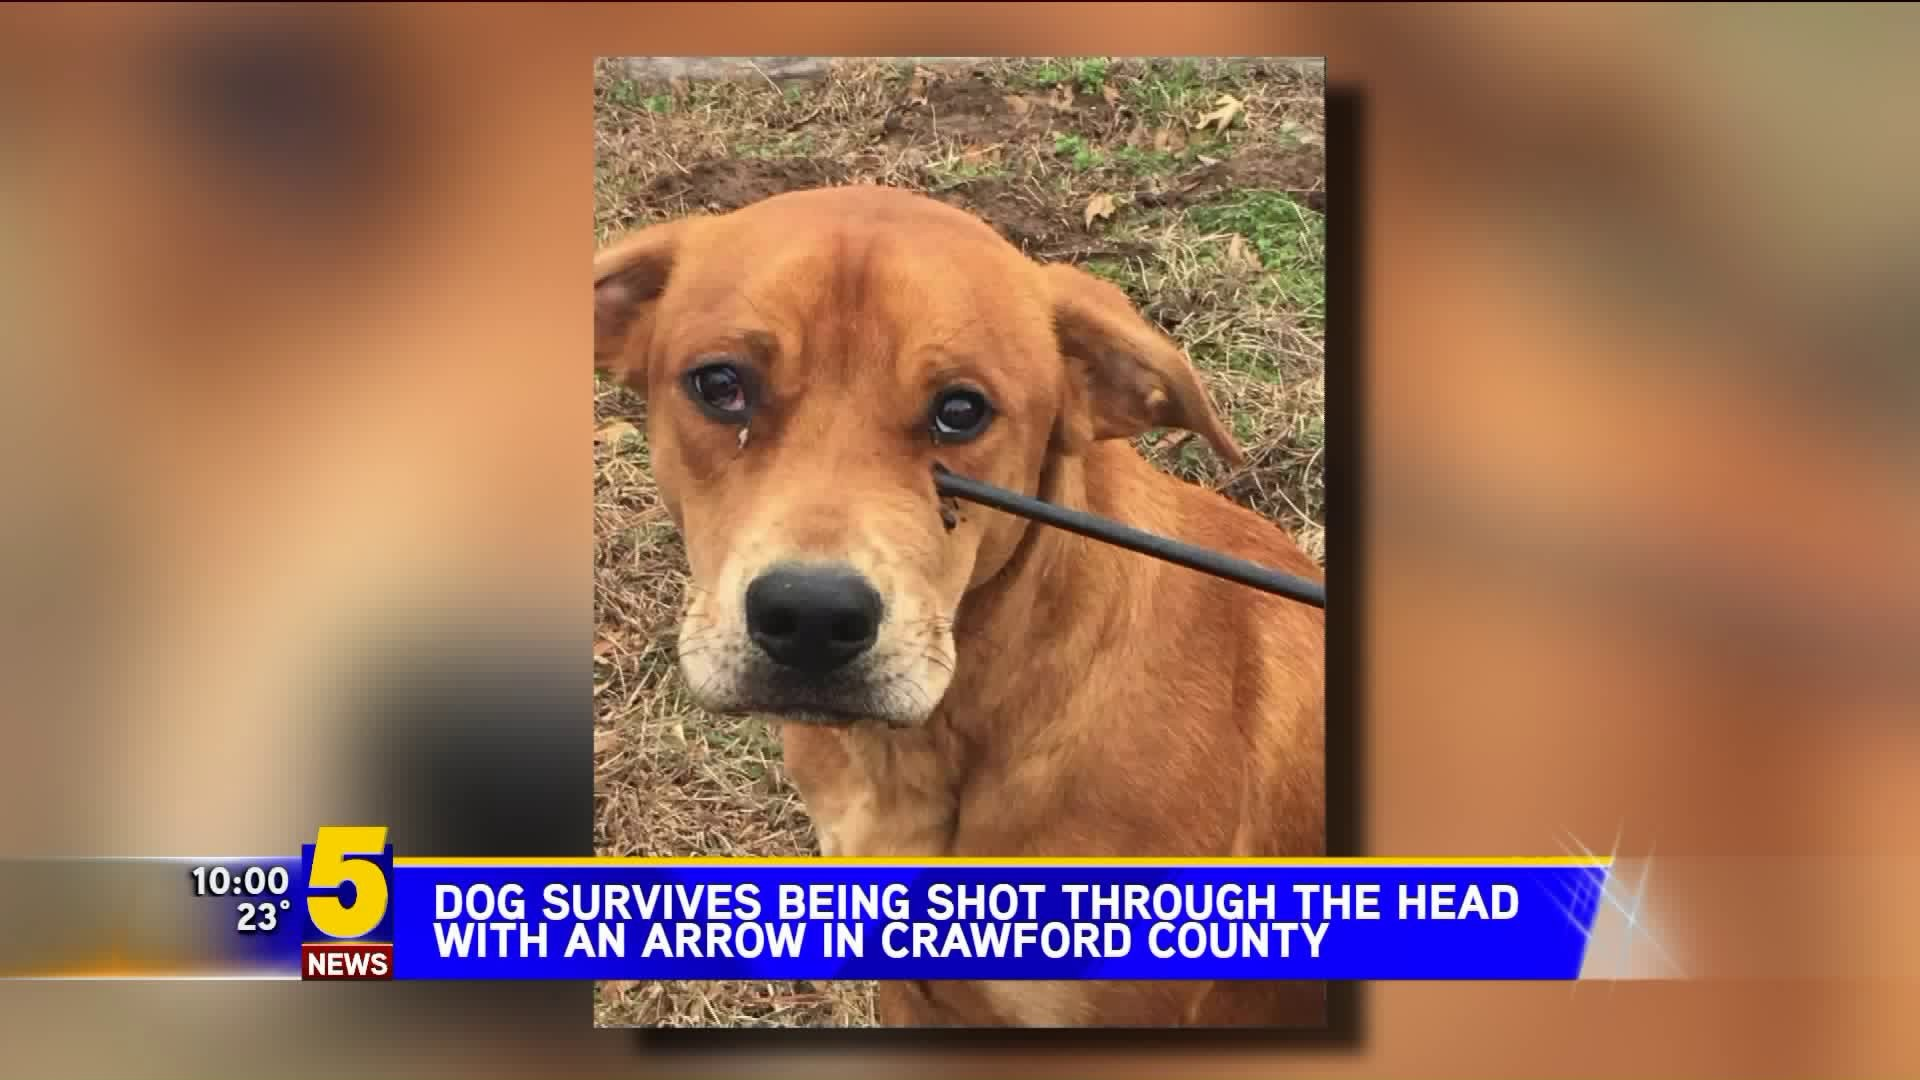 Warning Graphic Images Dog Shot Through The Head With Arrow In Crawford County 5newsonline Com He is at risk of infectio. dog survives being shot through head with an arrow in crawford county